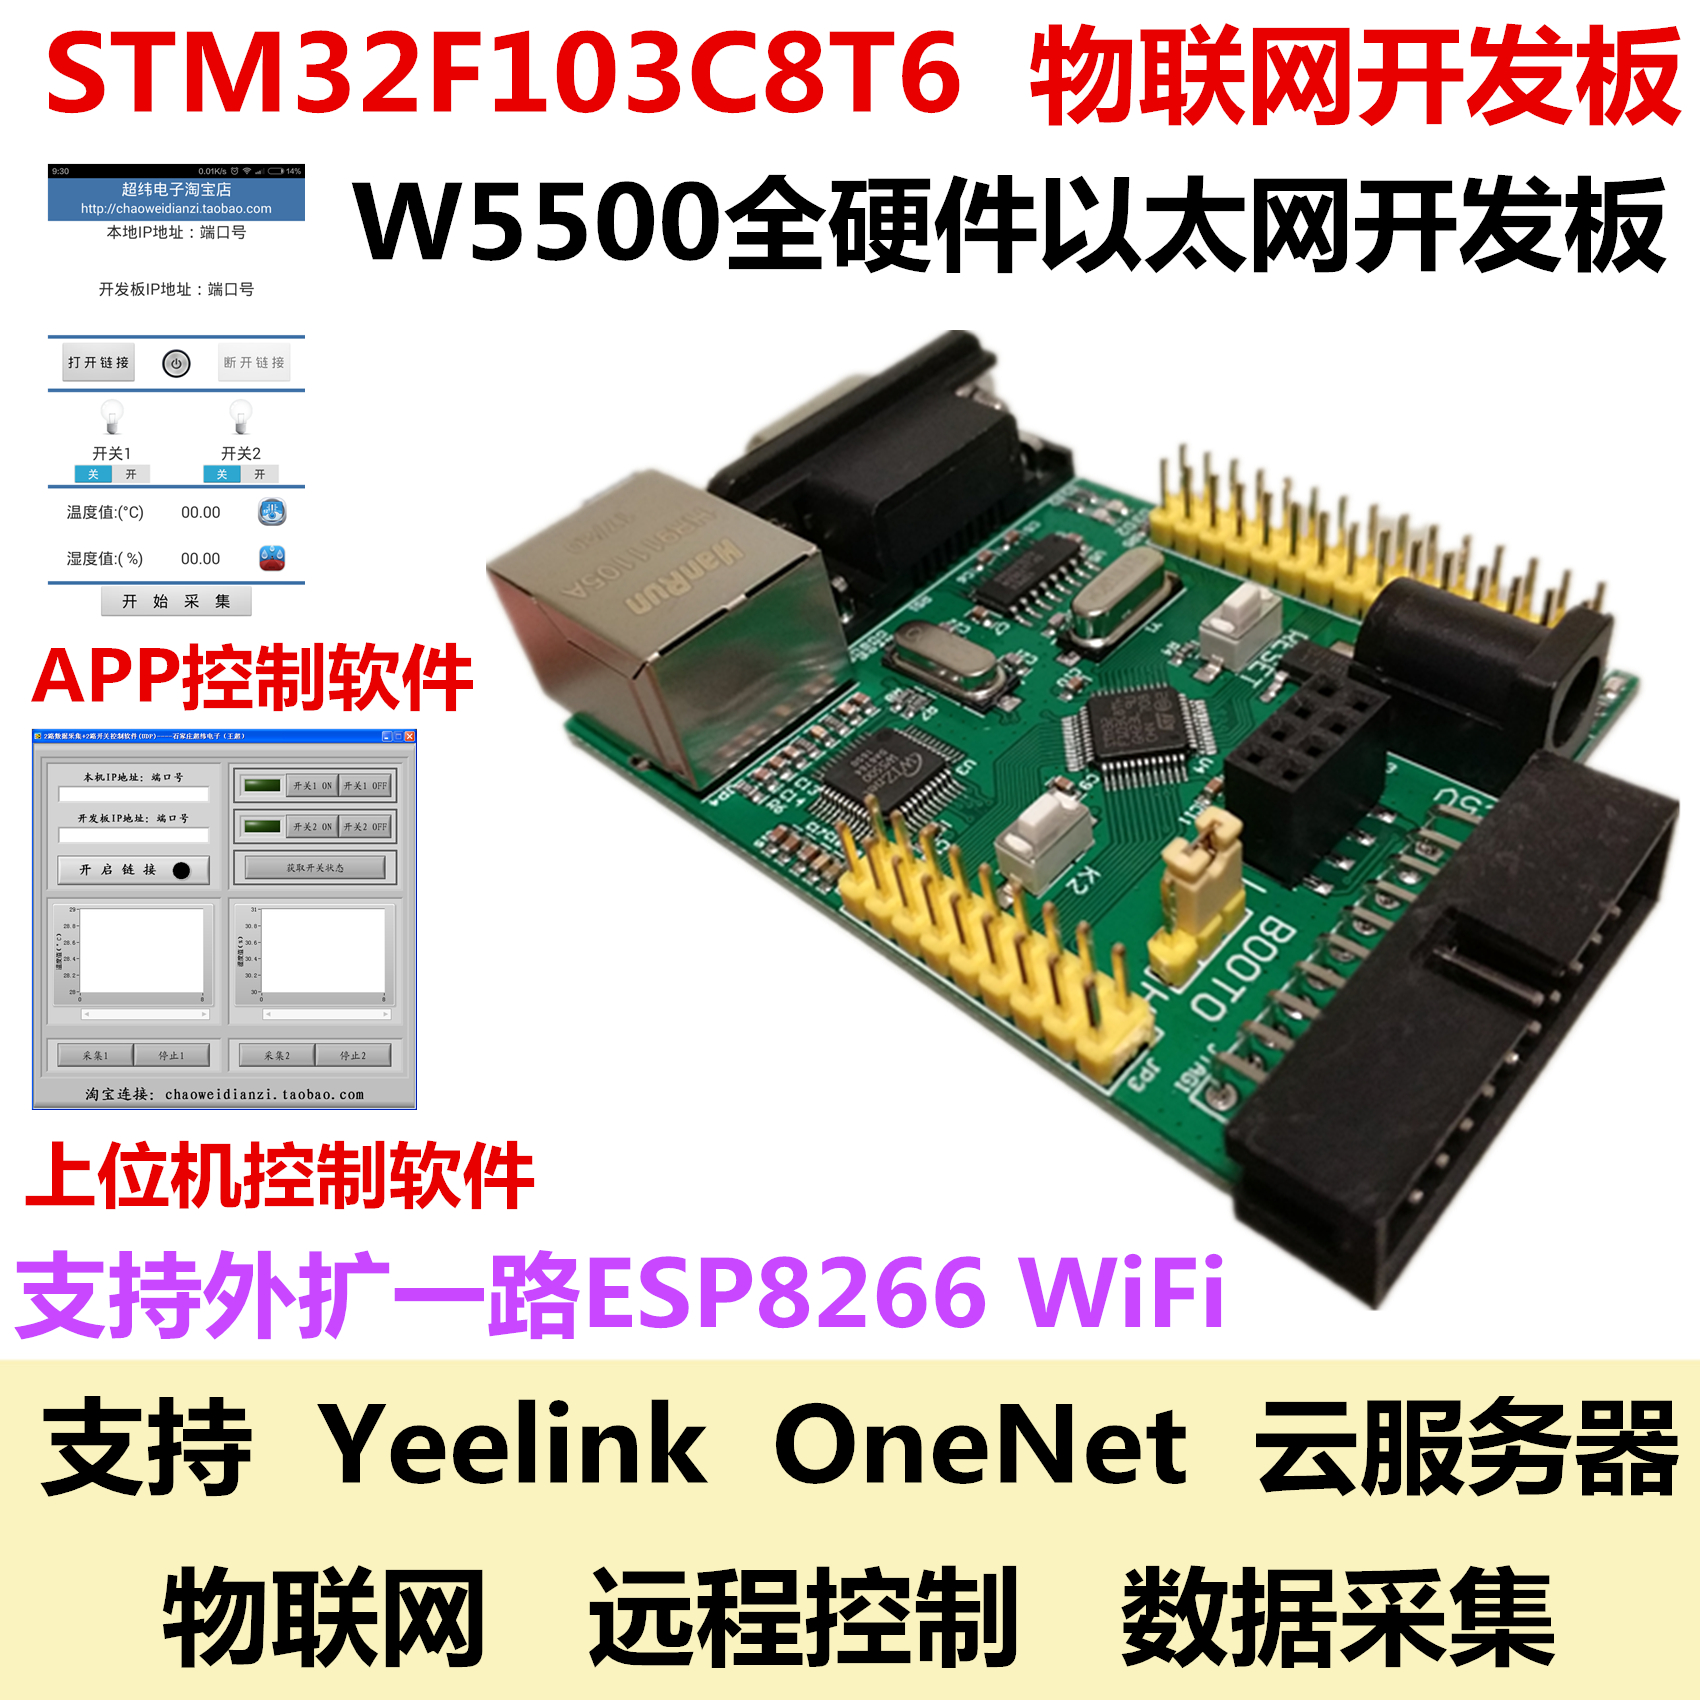 Internet of Things, WiFi STM32 W5500 Development Board, Hardware Ethernet Module, Remote Control Cloud Service lua wifi nodemcu internet of things development board based on cp2102 esp8266